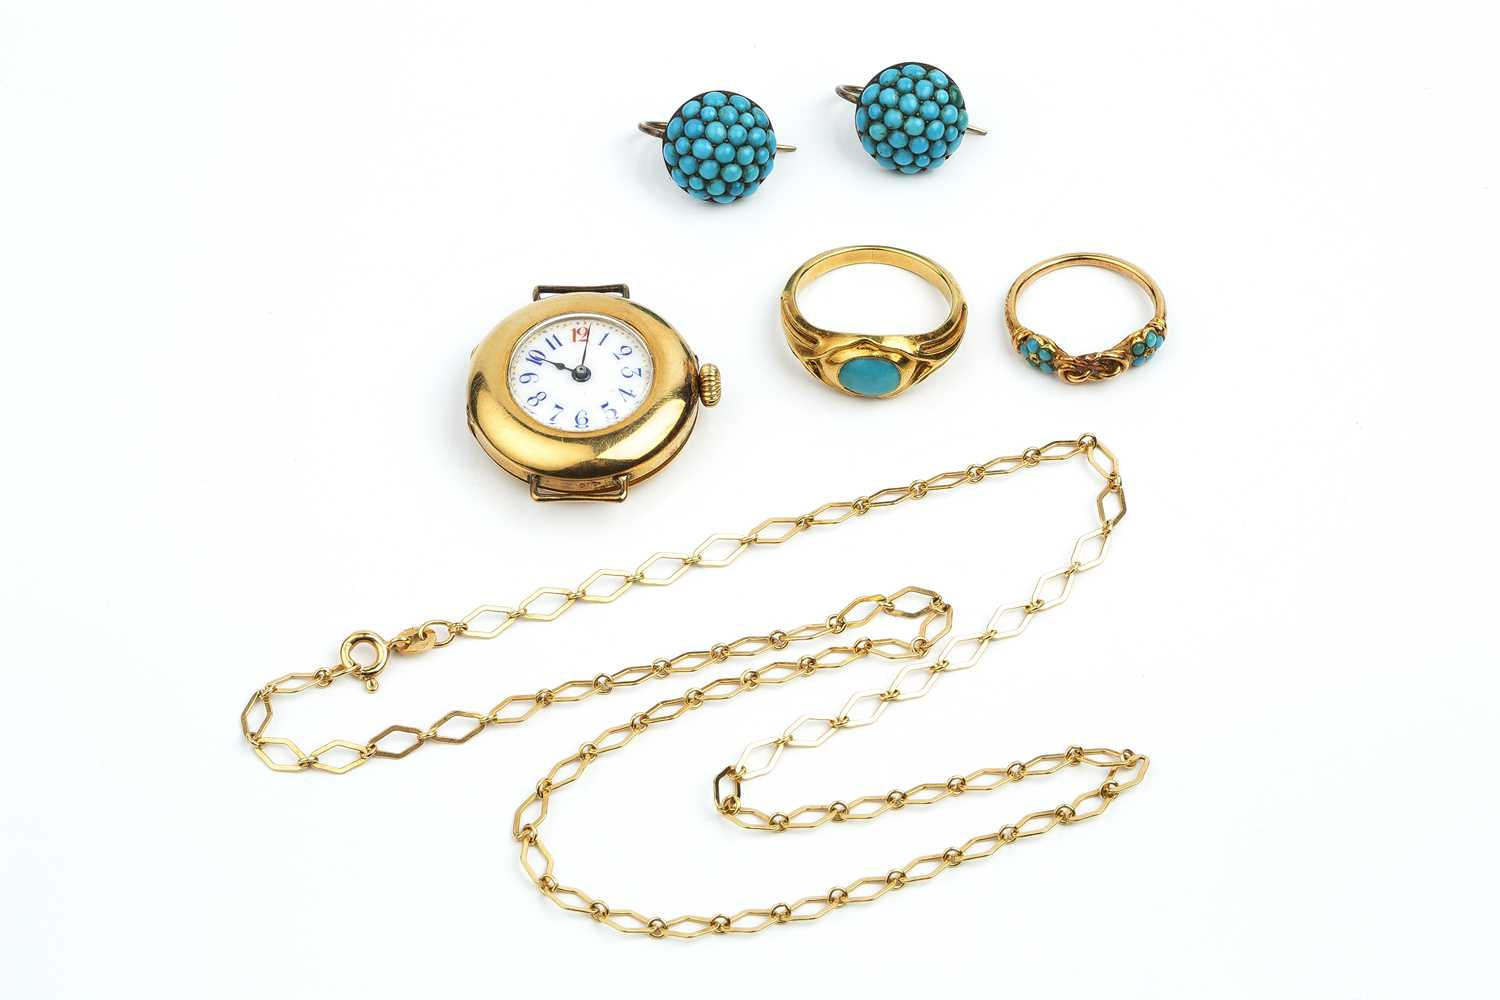 A collection of antique and later jewellery, comprising a 19th century dress ring, with central knot